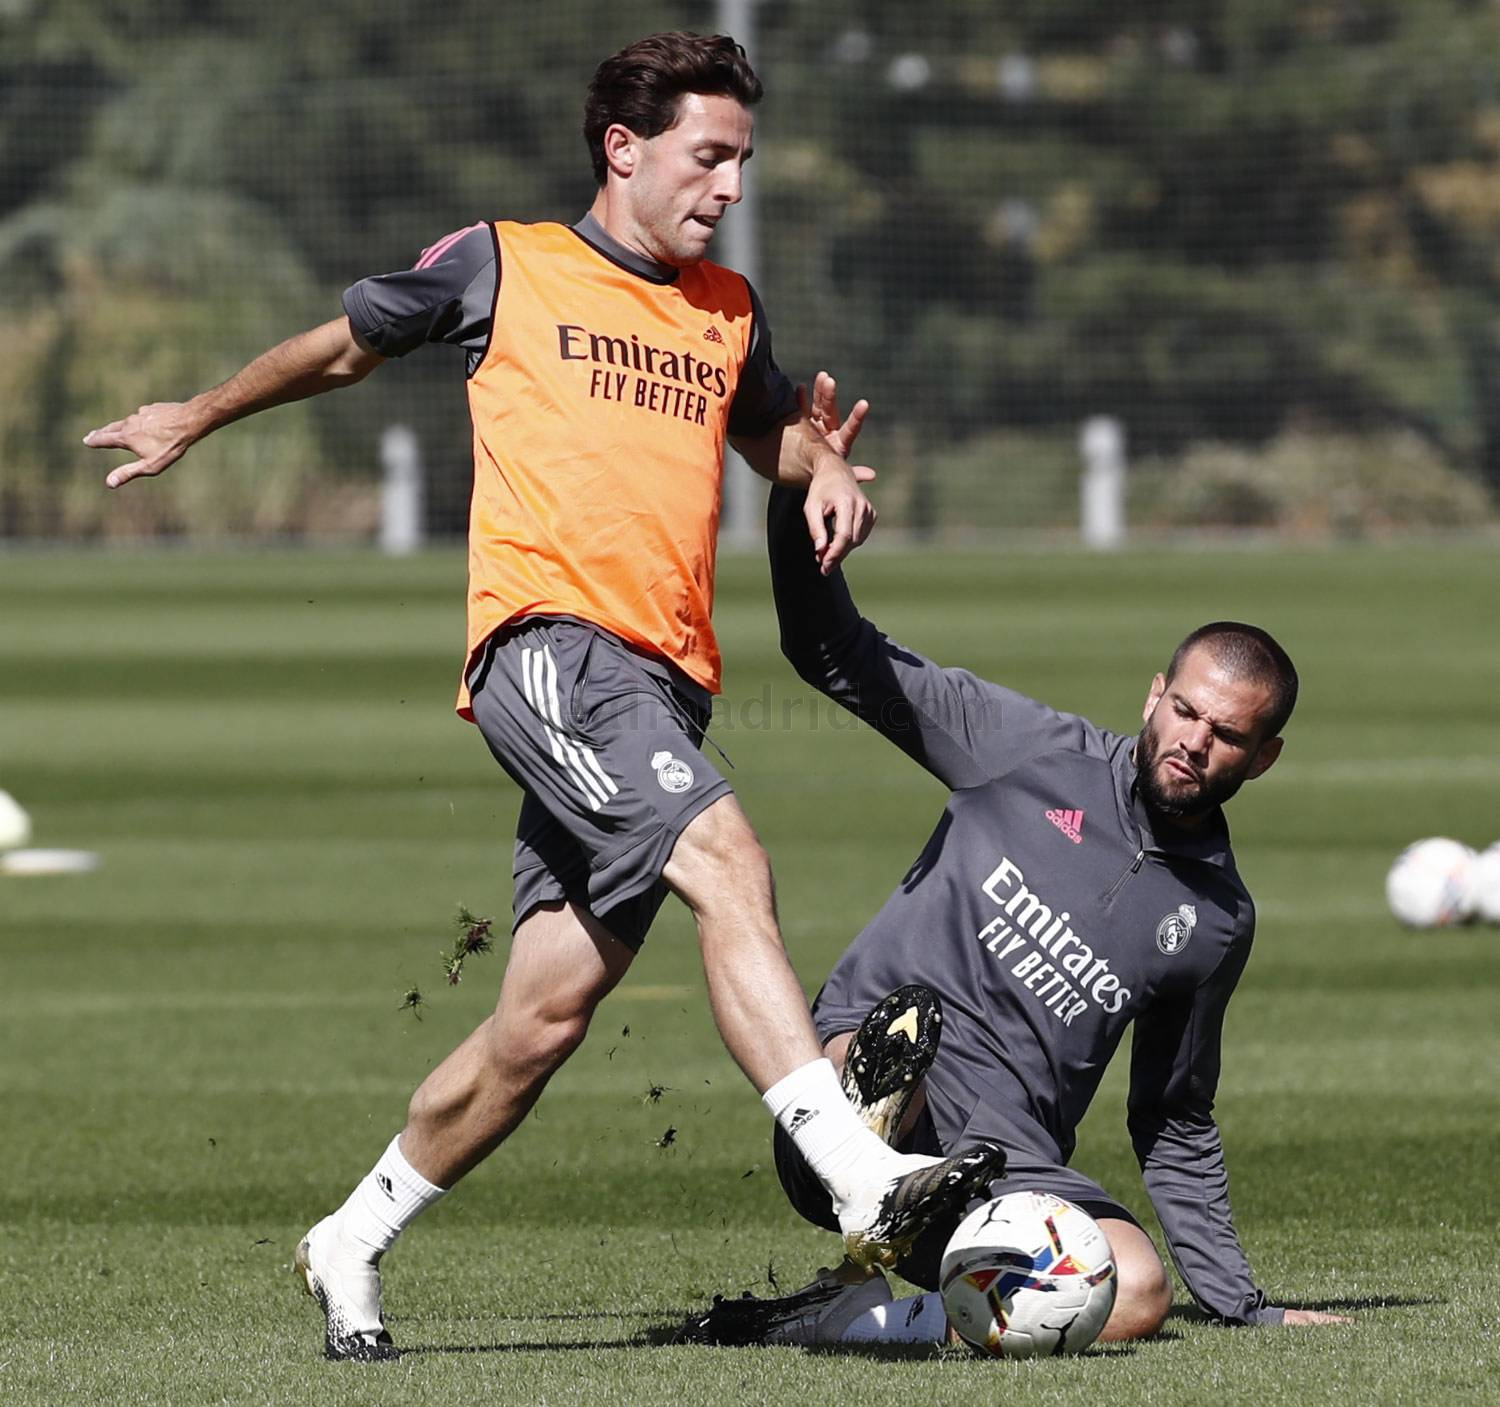 Real Madrid - Entrenamiento del Real Madrid  - 27-09-2020